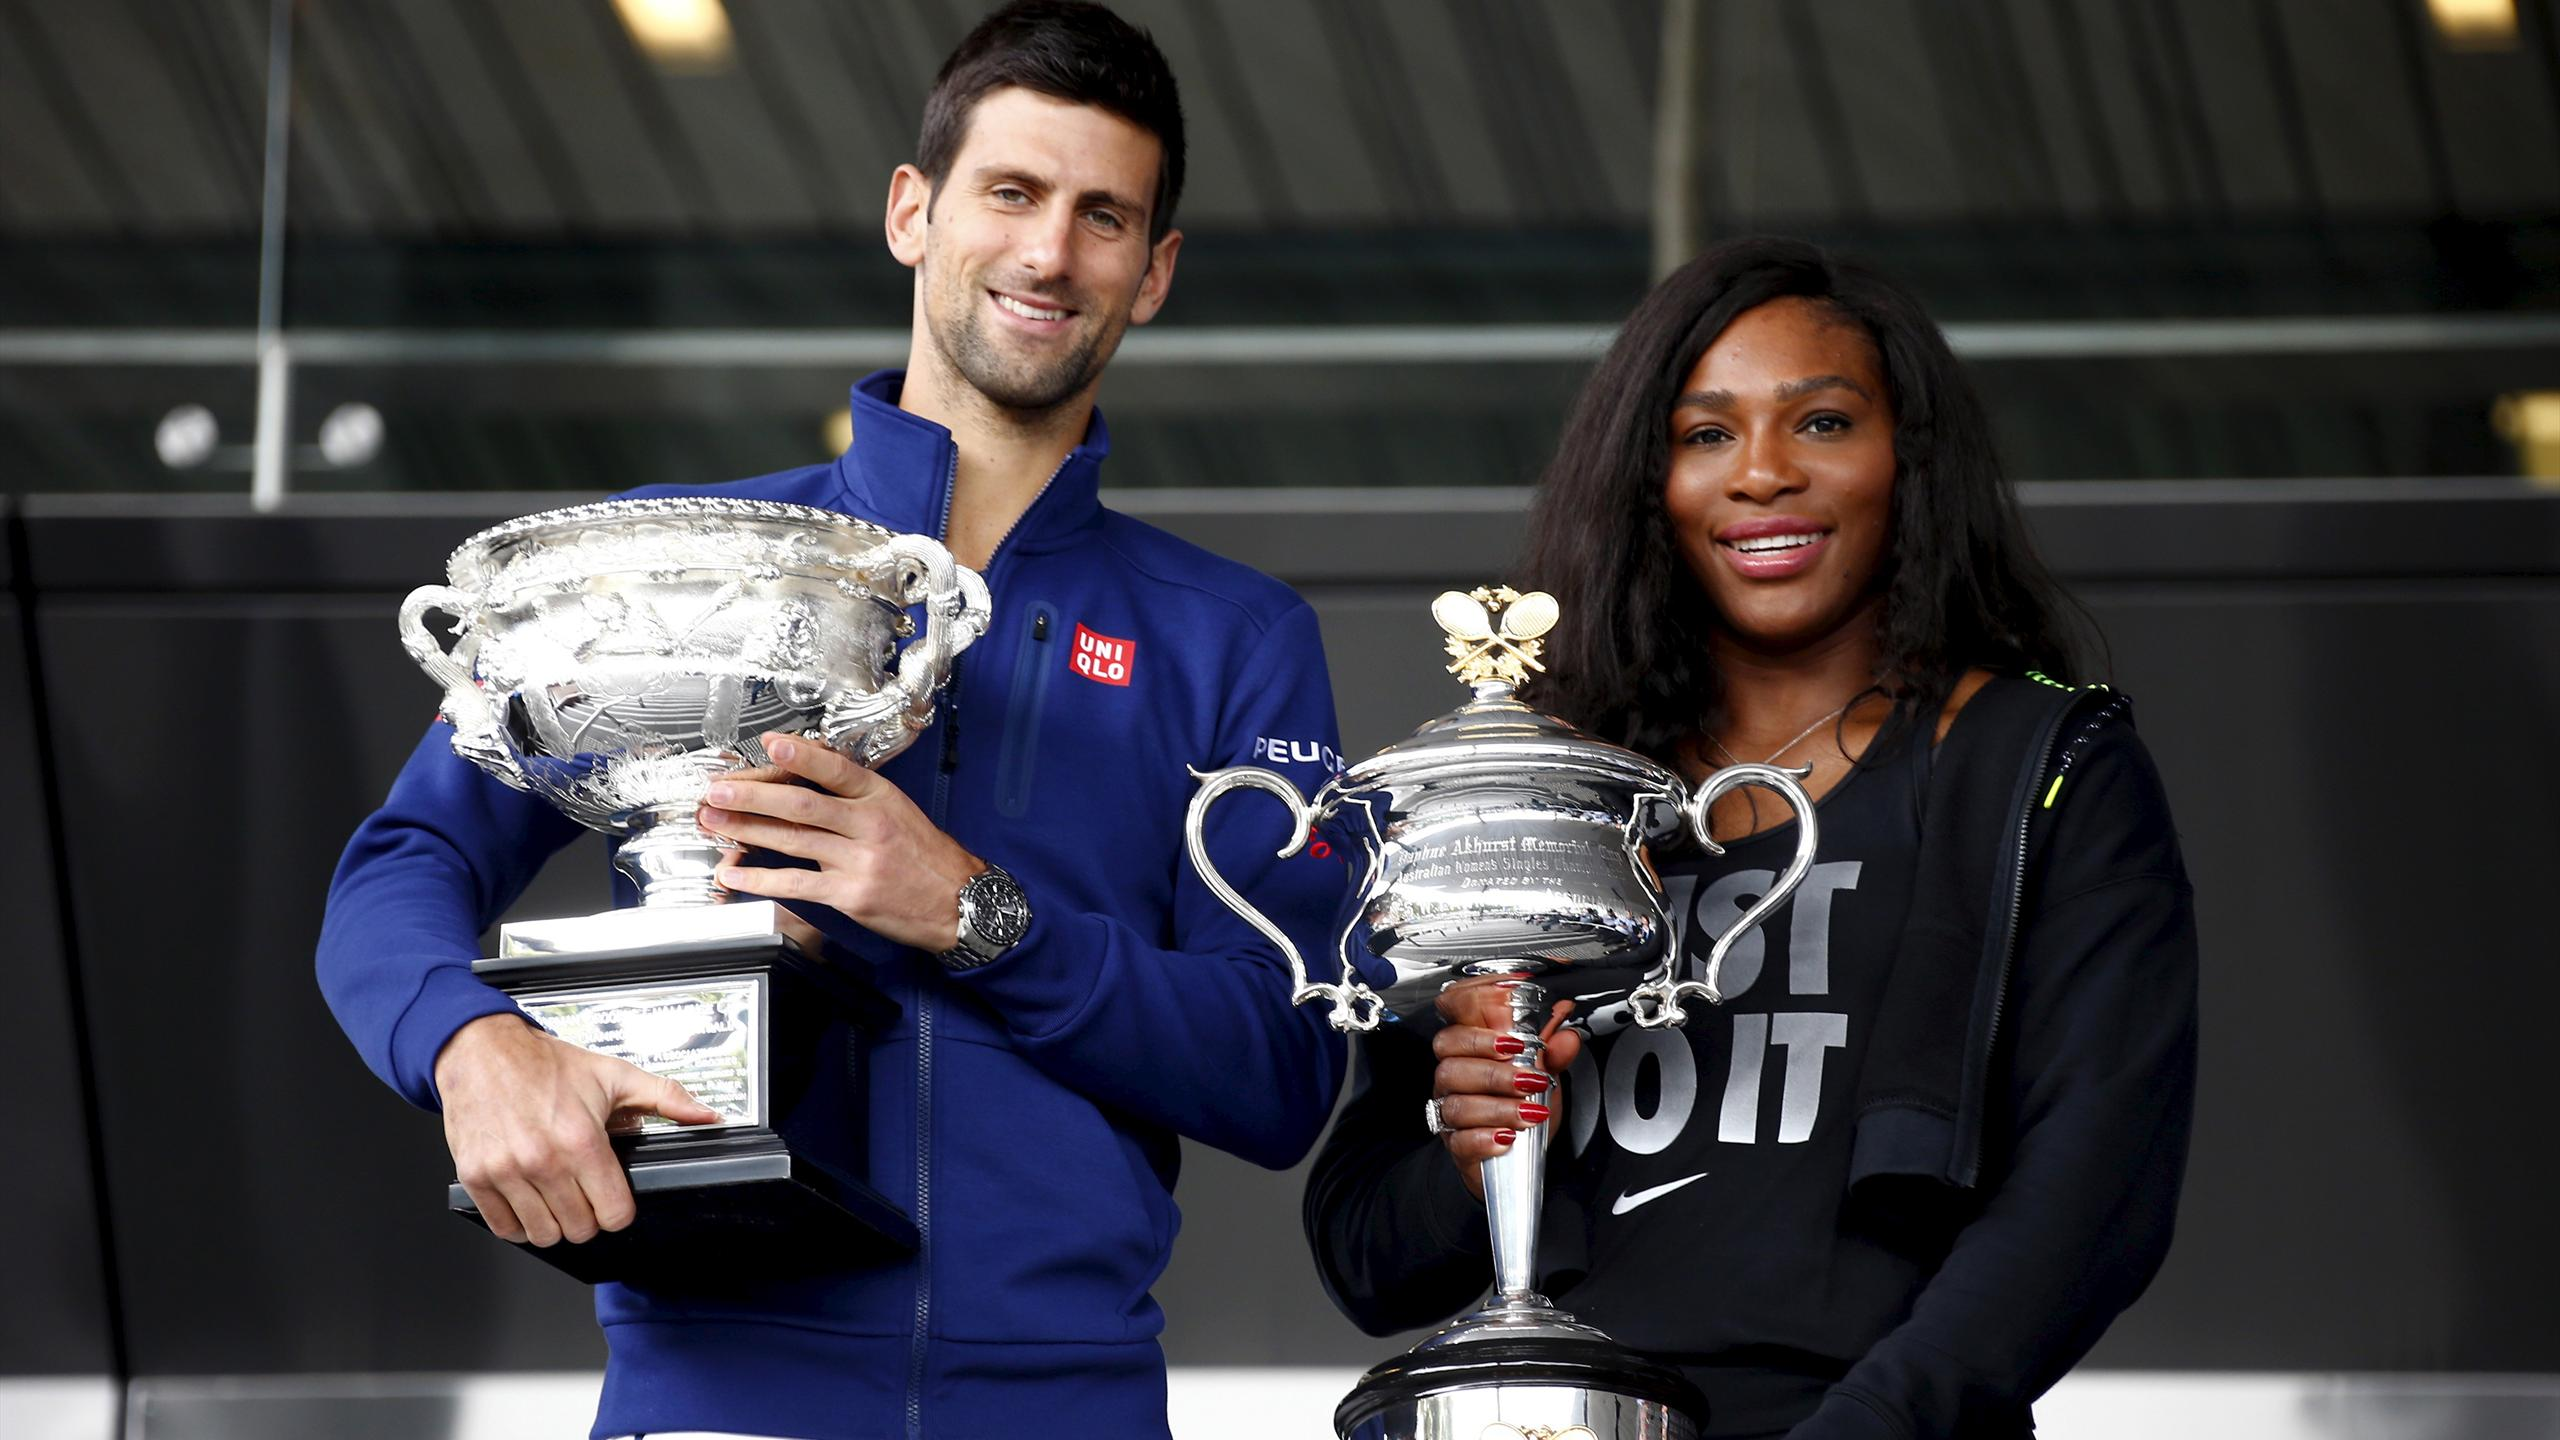 Current Australian Open Men's and Women's champions Serbia's Novak Djokovic and Serena Williams